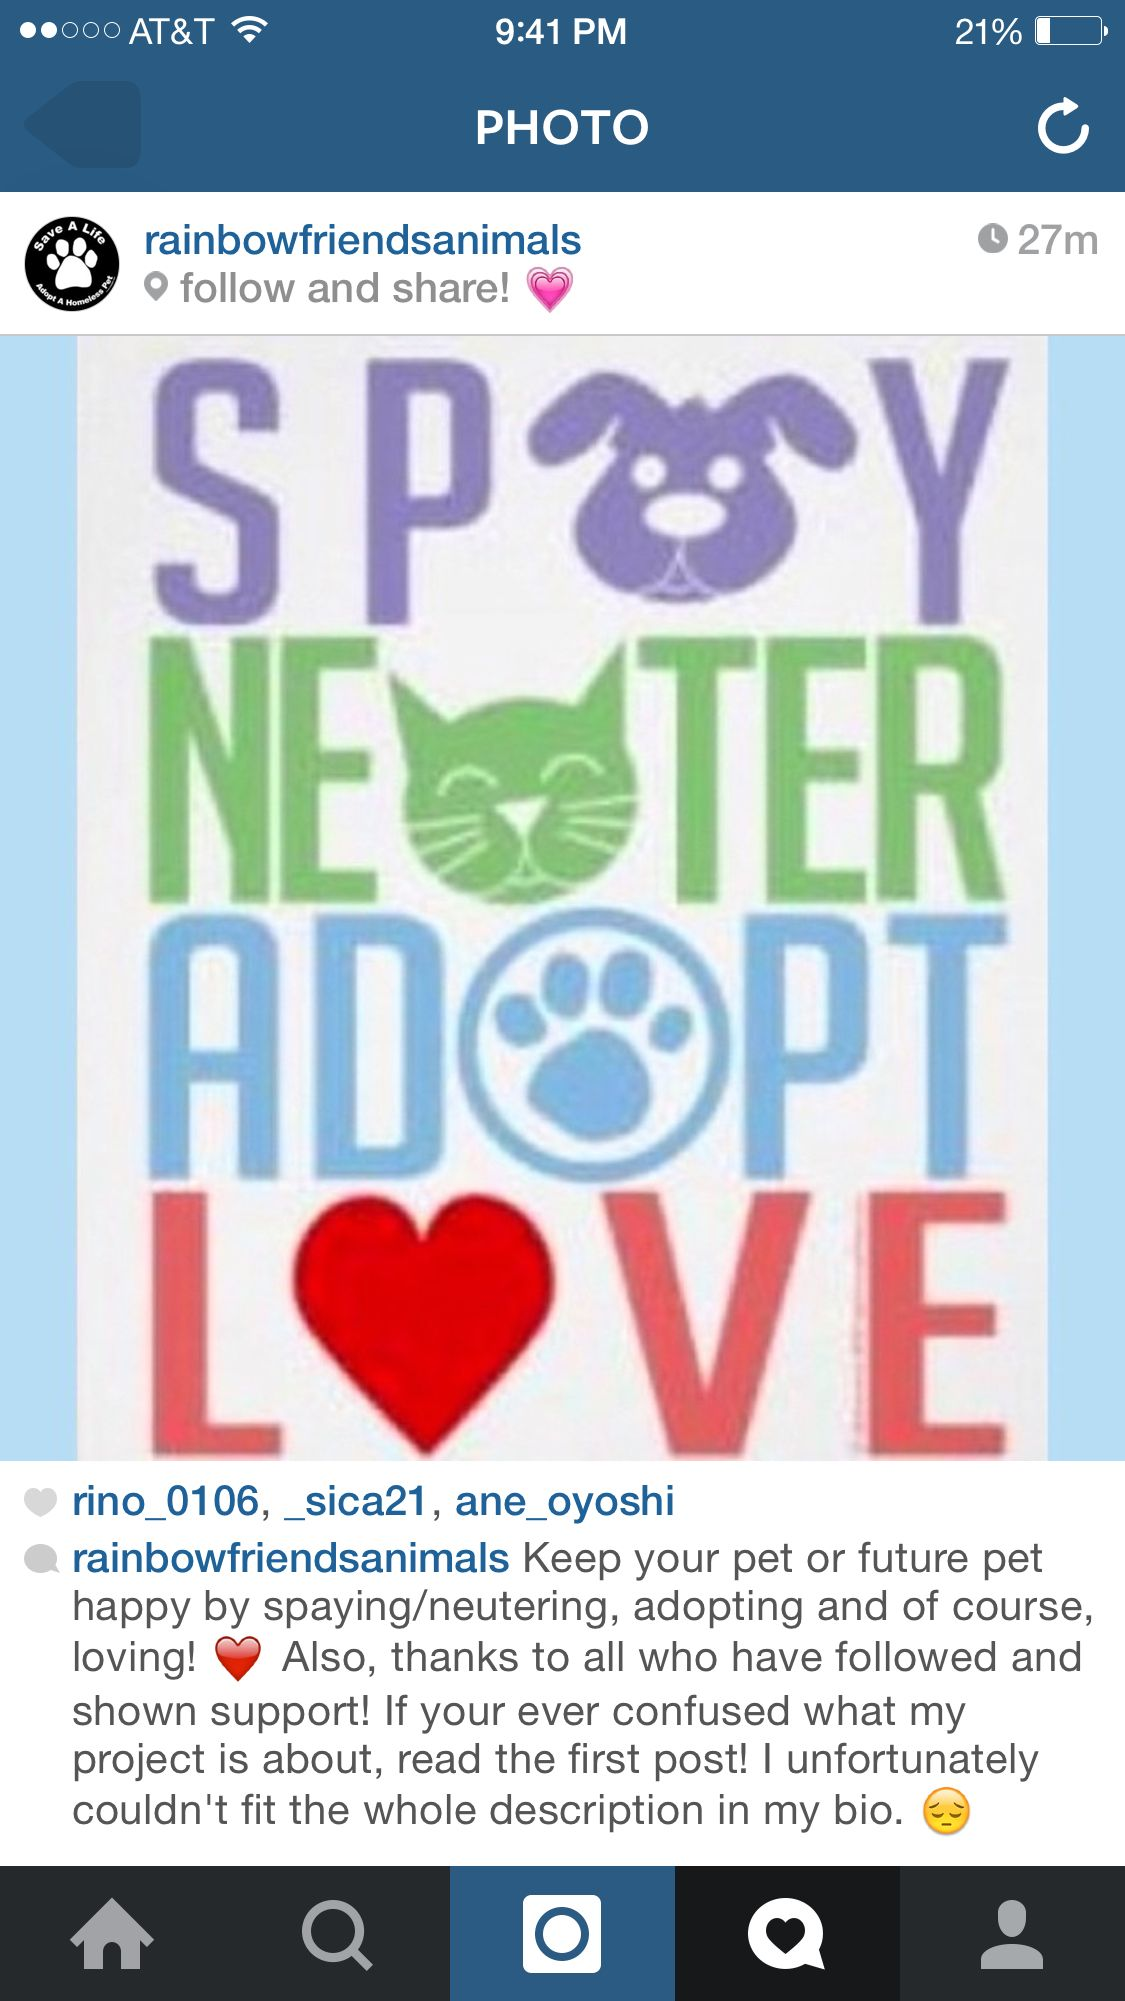 Adopt don't shop  Spay and neuter